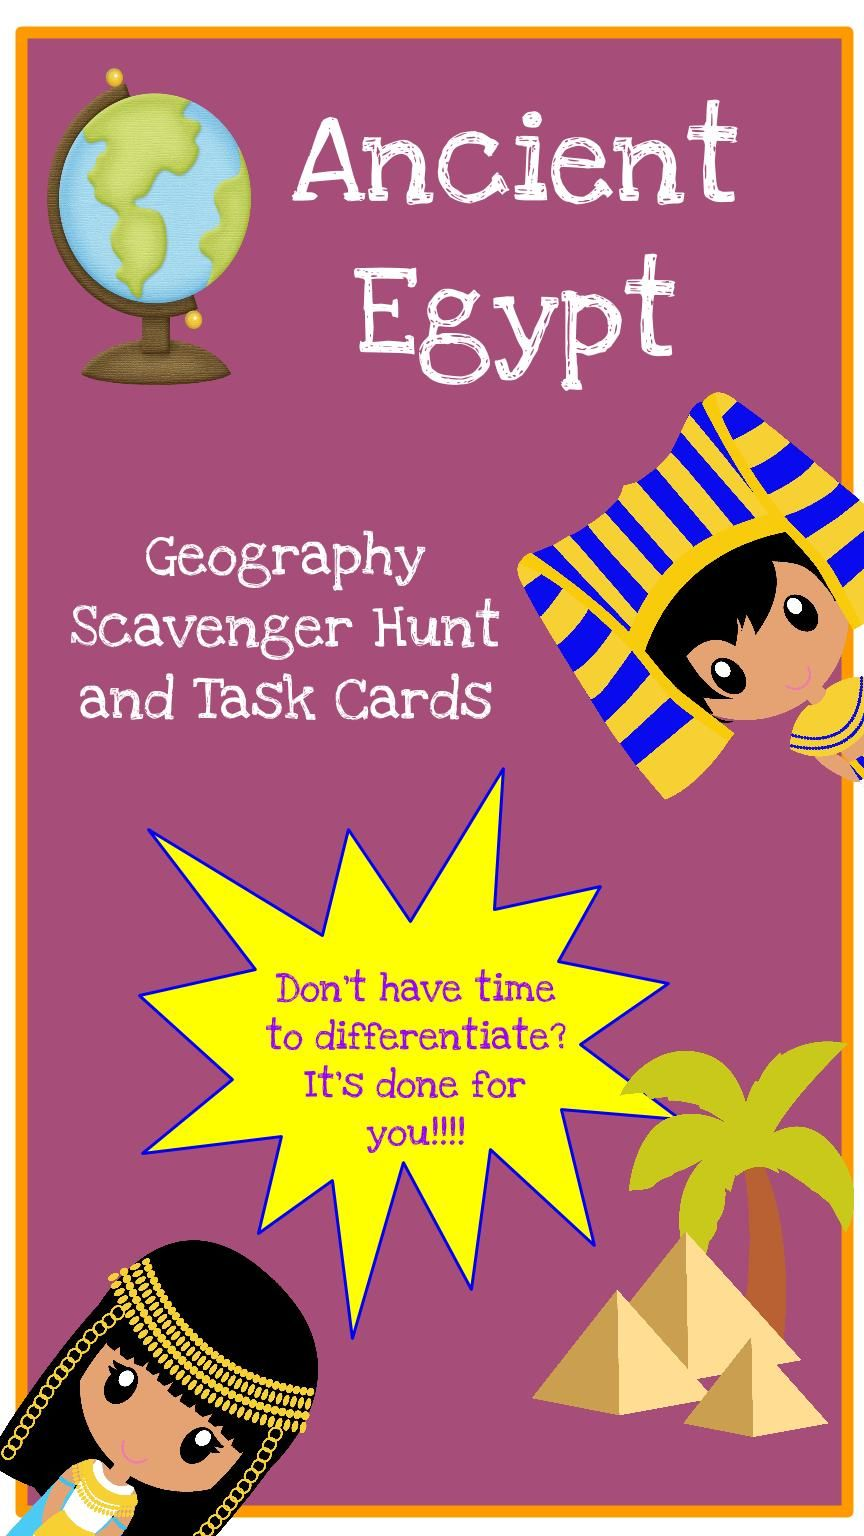 what are the geographical features of ancient egypt